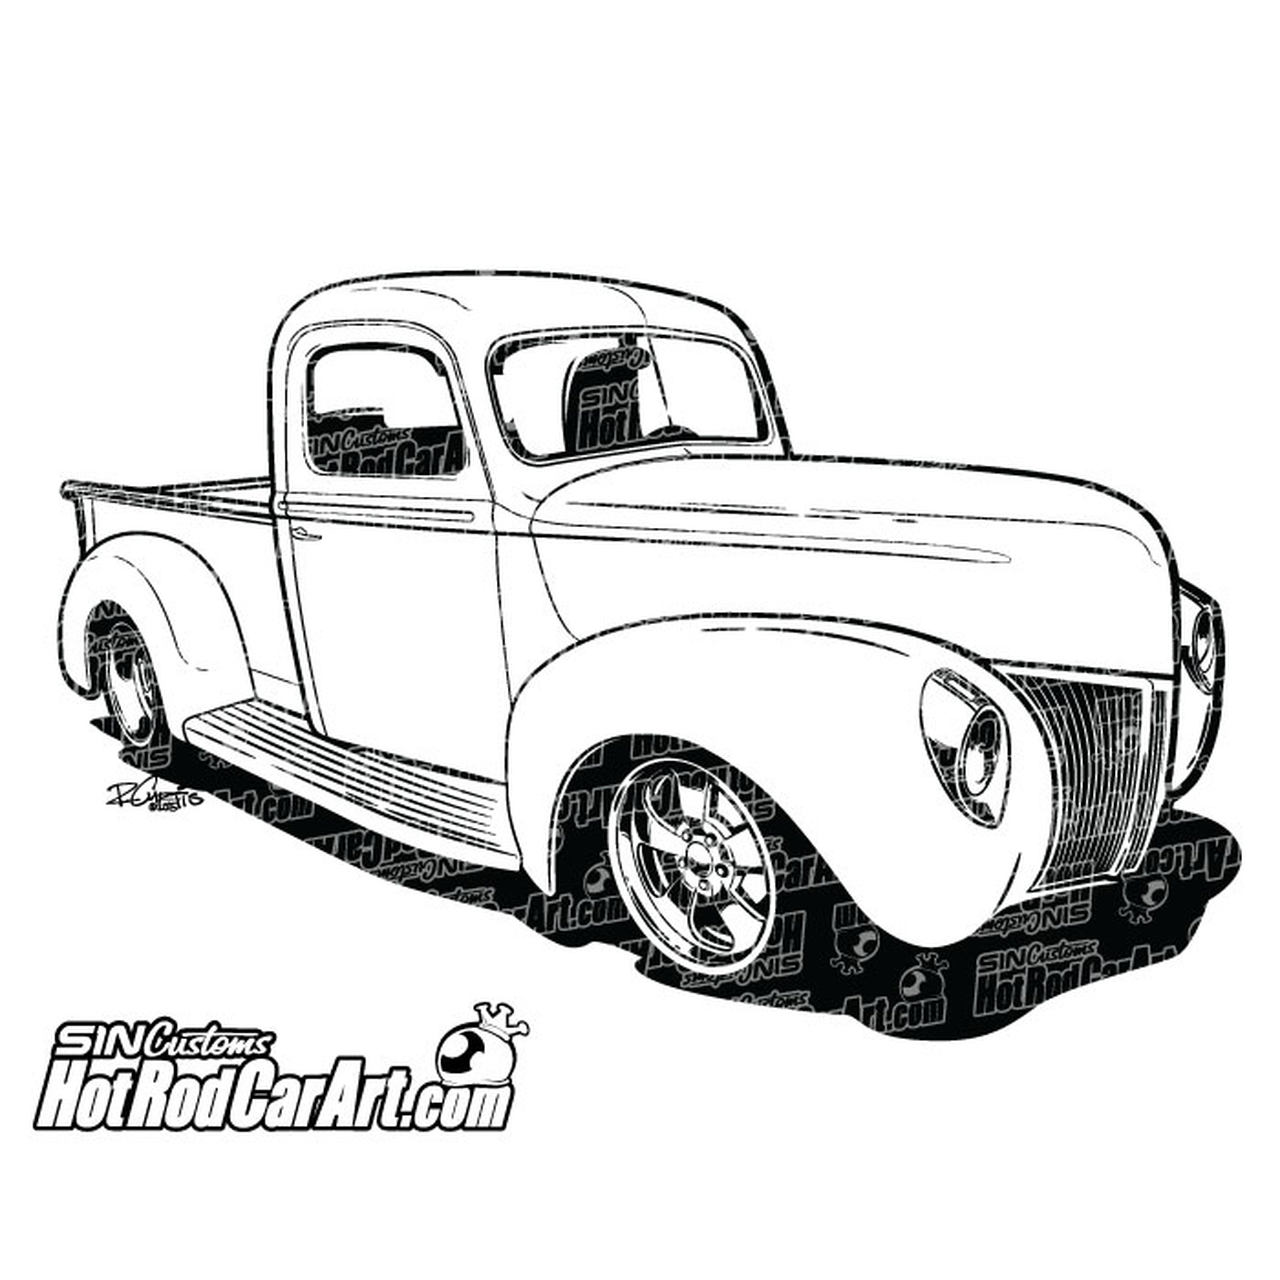 1940 Ford Pickup Truck.